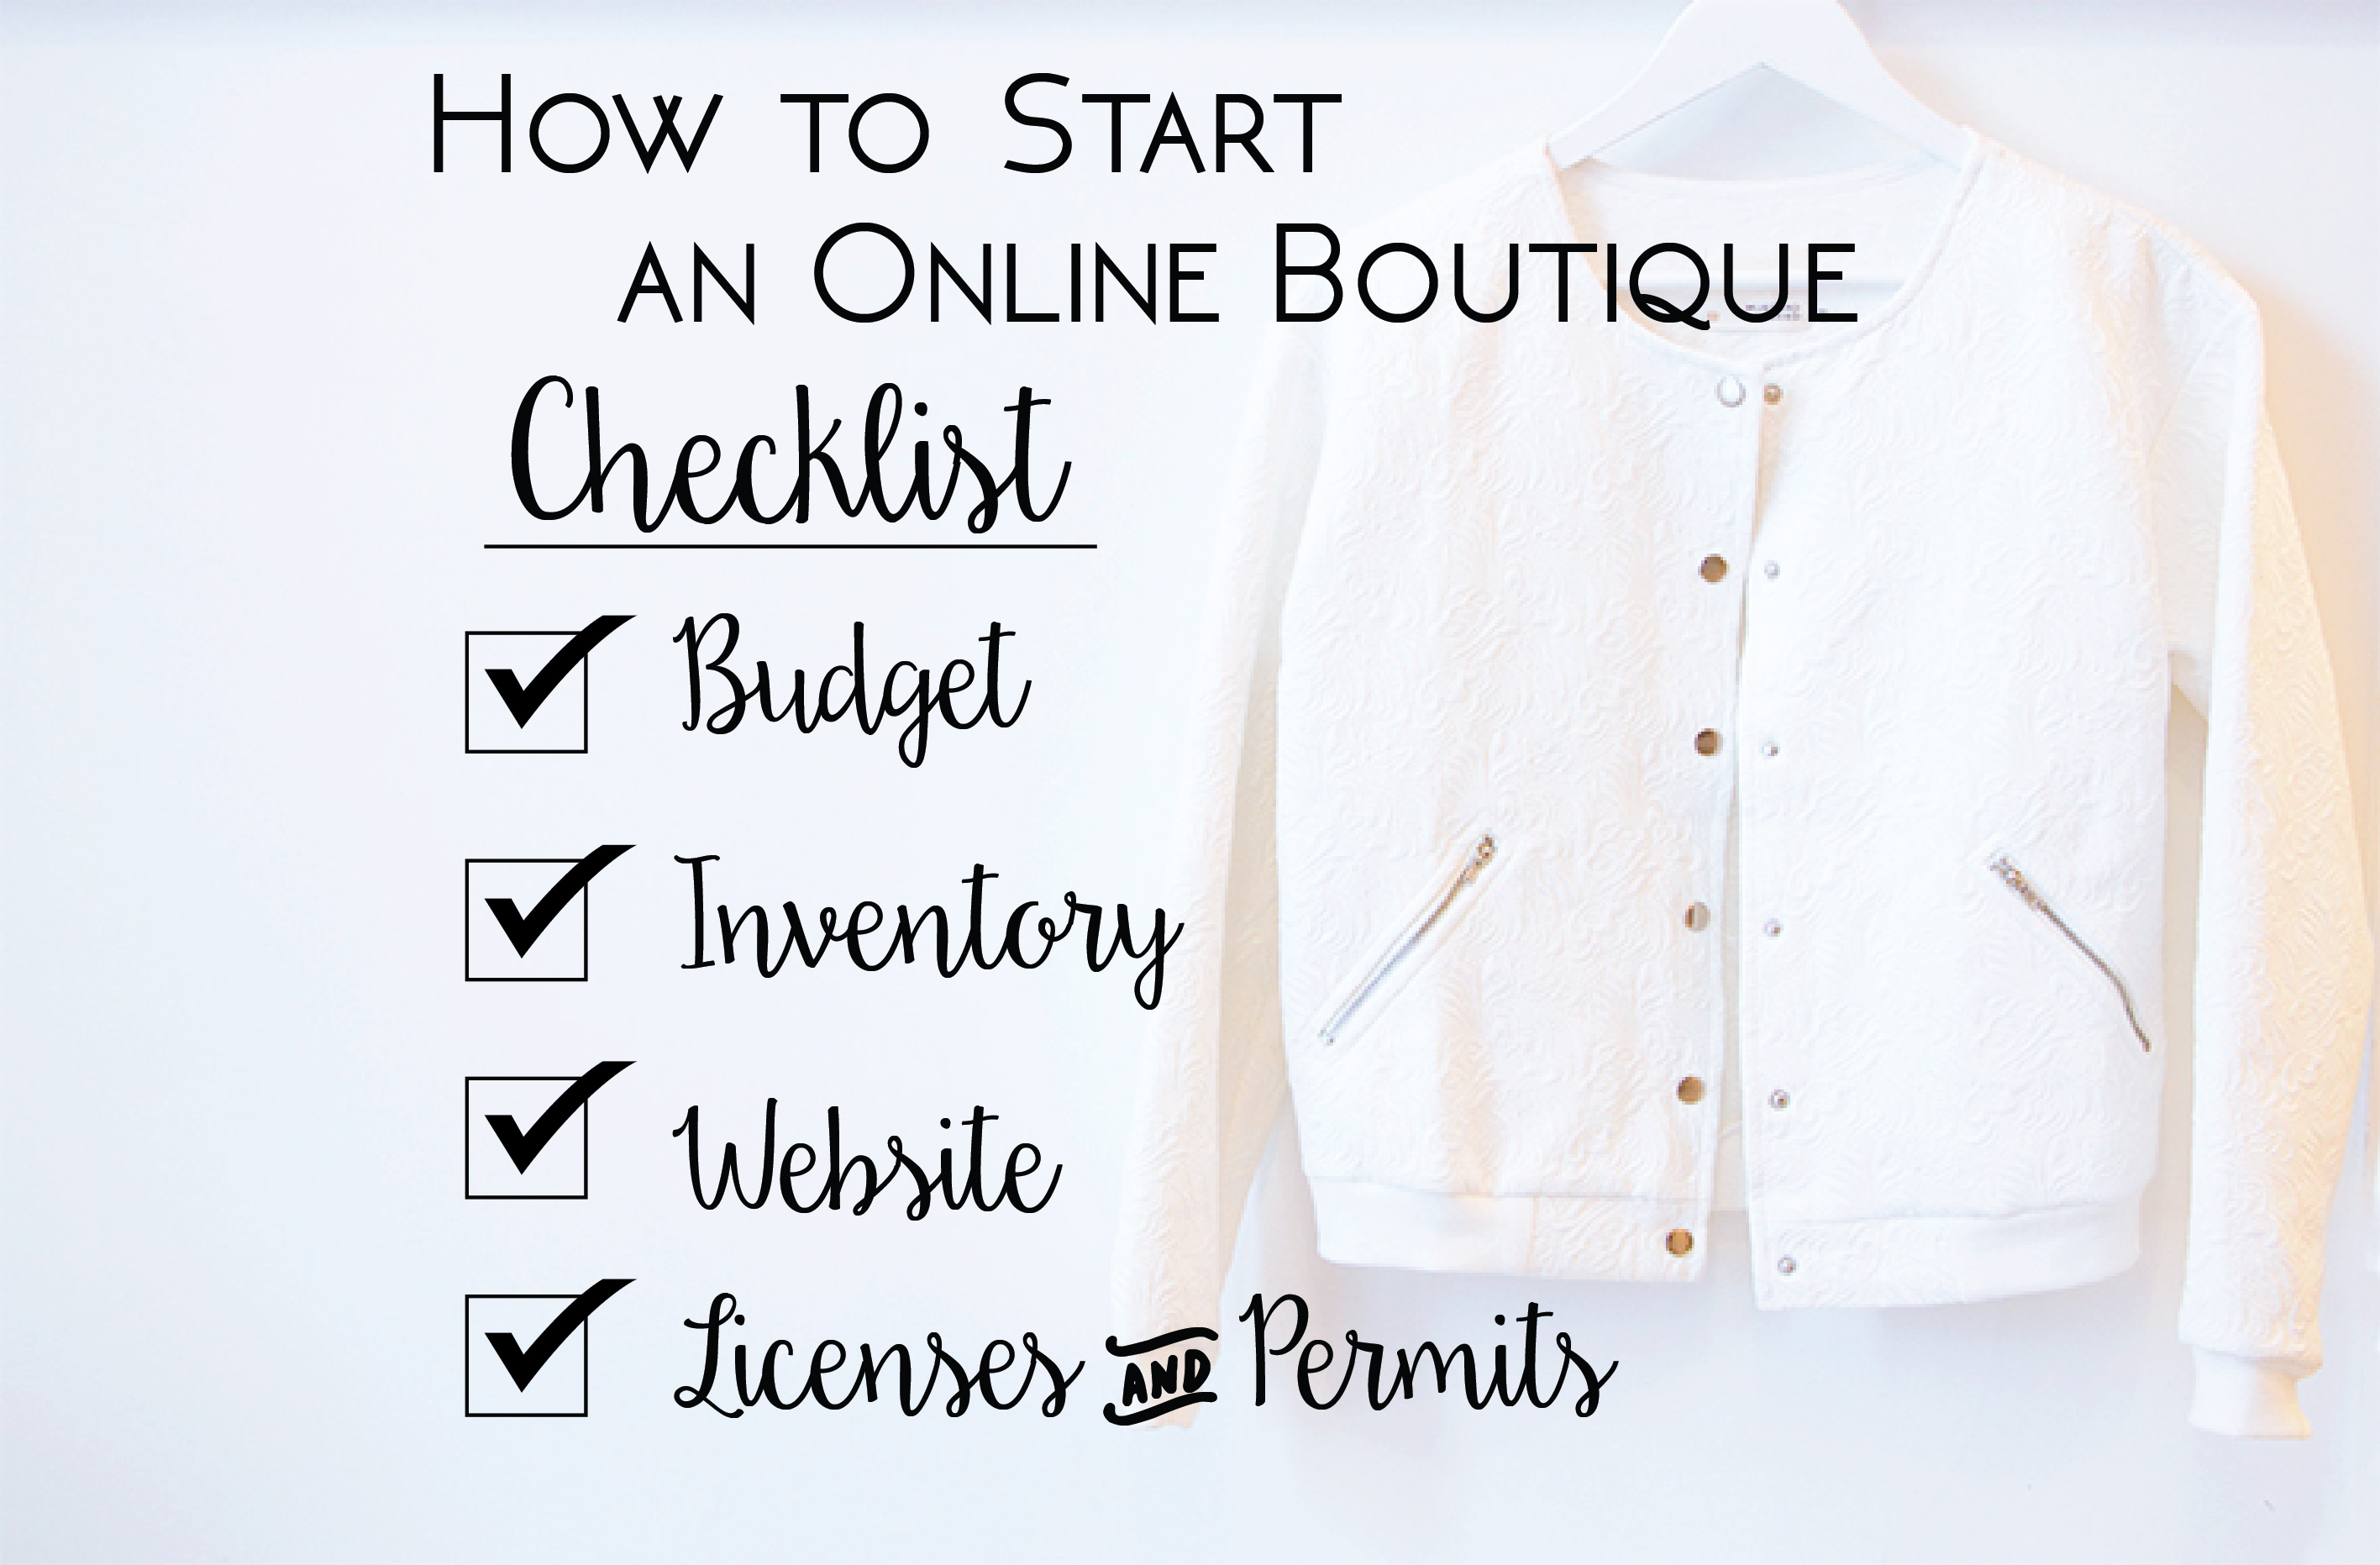 How To Start an Online Boutique Checklist